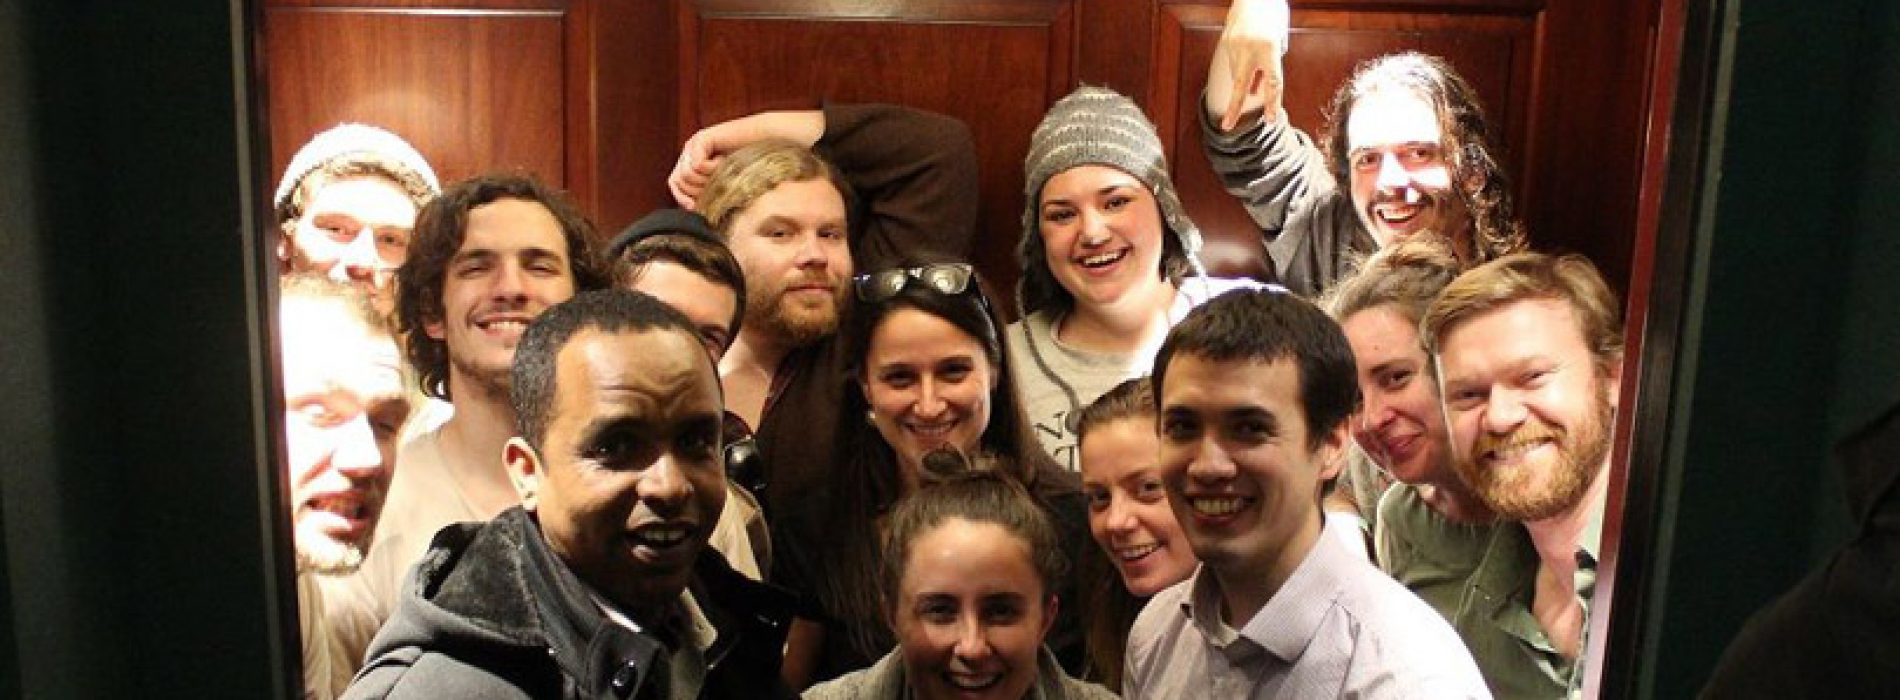 Stuck in an elevator to save Obamacare